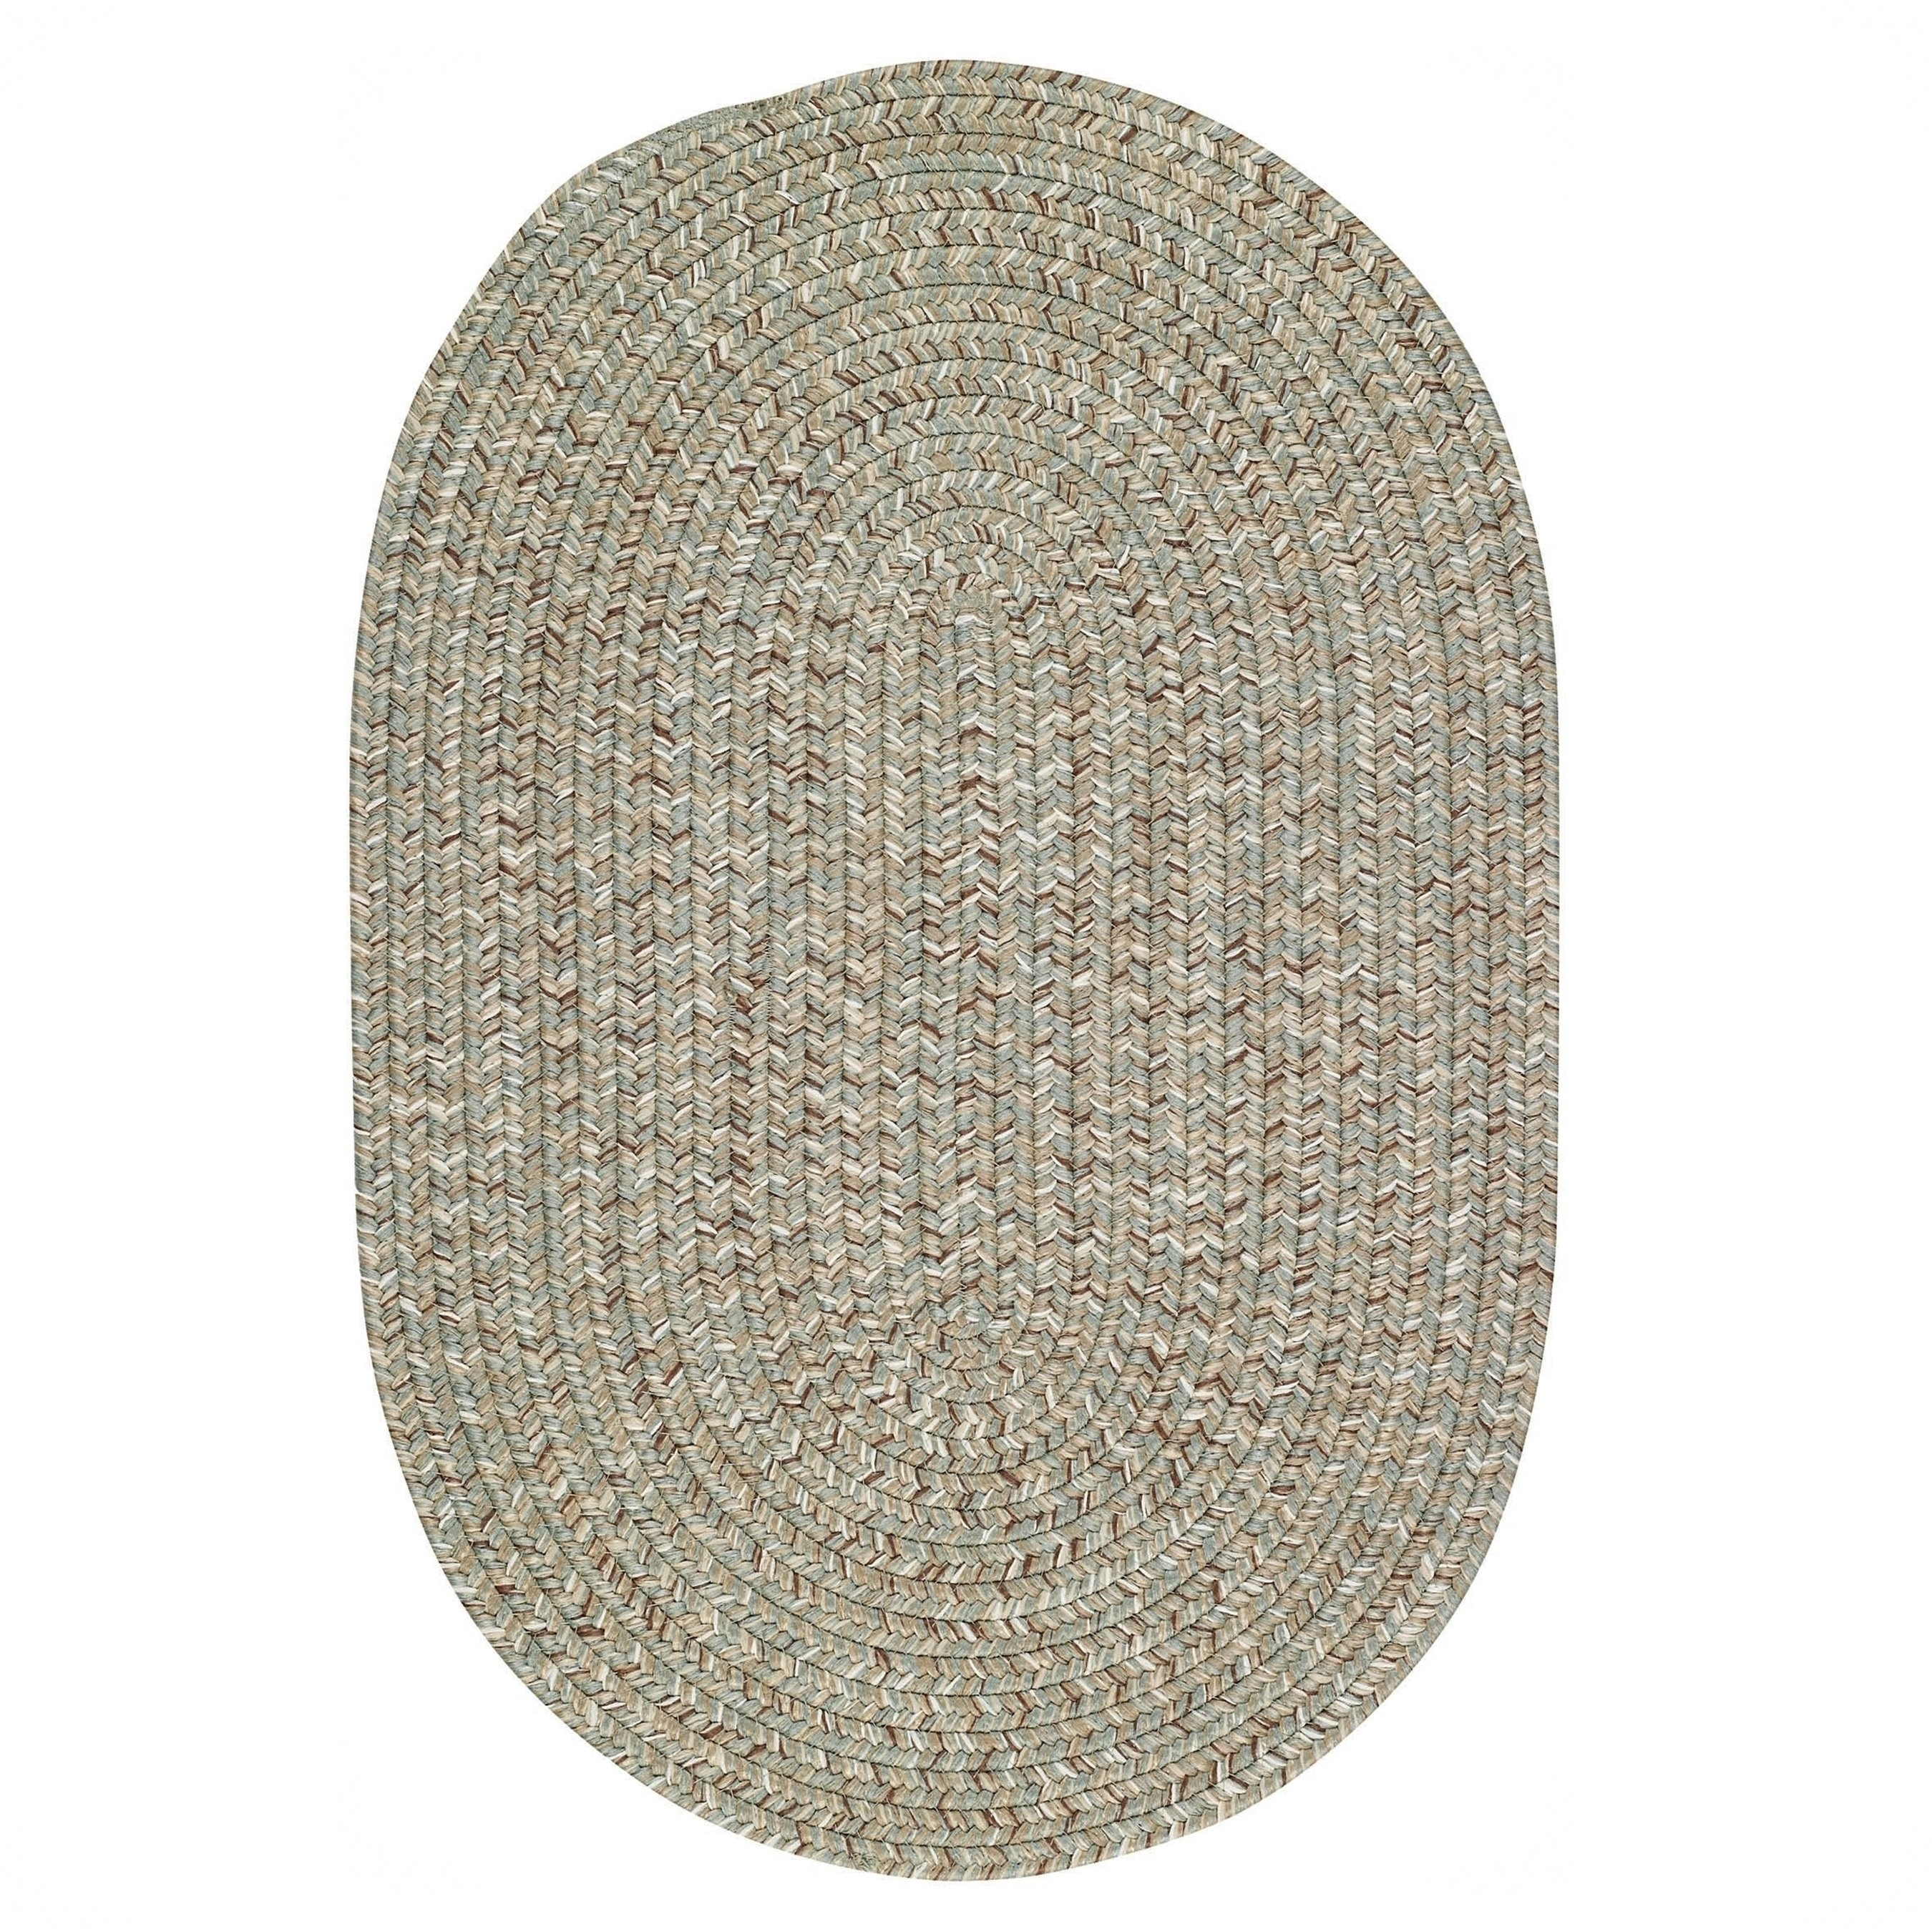 Capel Rugs Sea Glass Spa Oval Outdoor Braided Rugs Multi Sage Green 10 Round Square Polypropylene Solid Braided Area Rugs